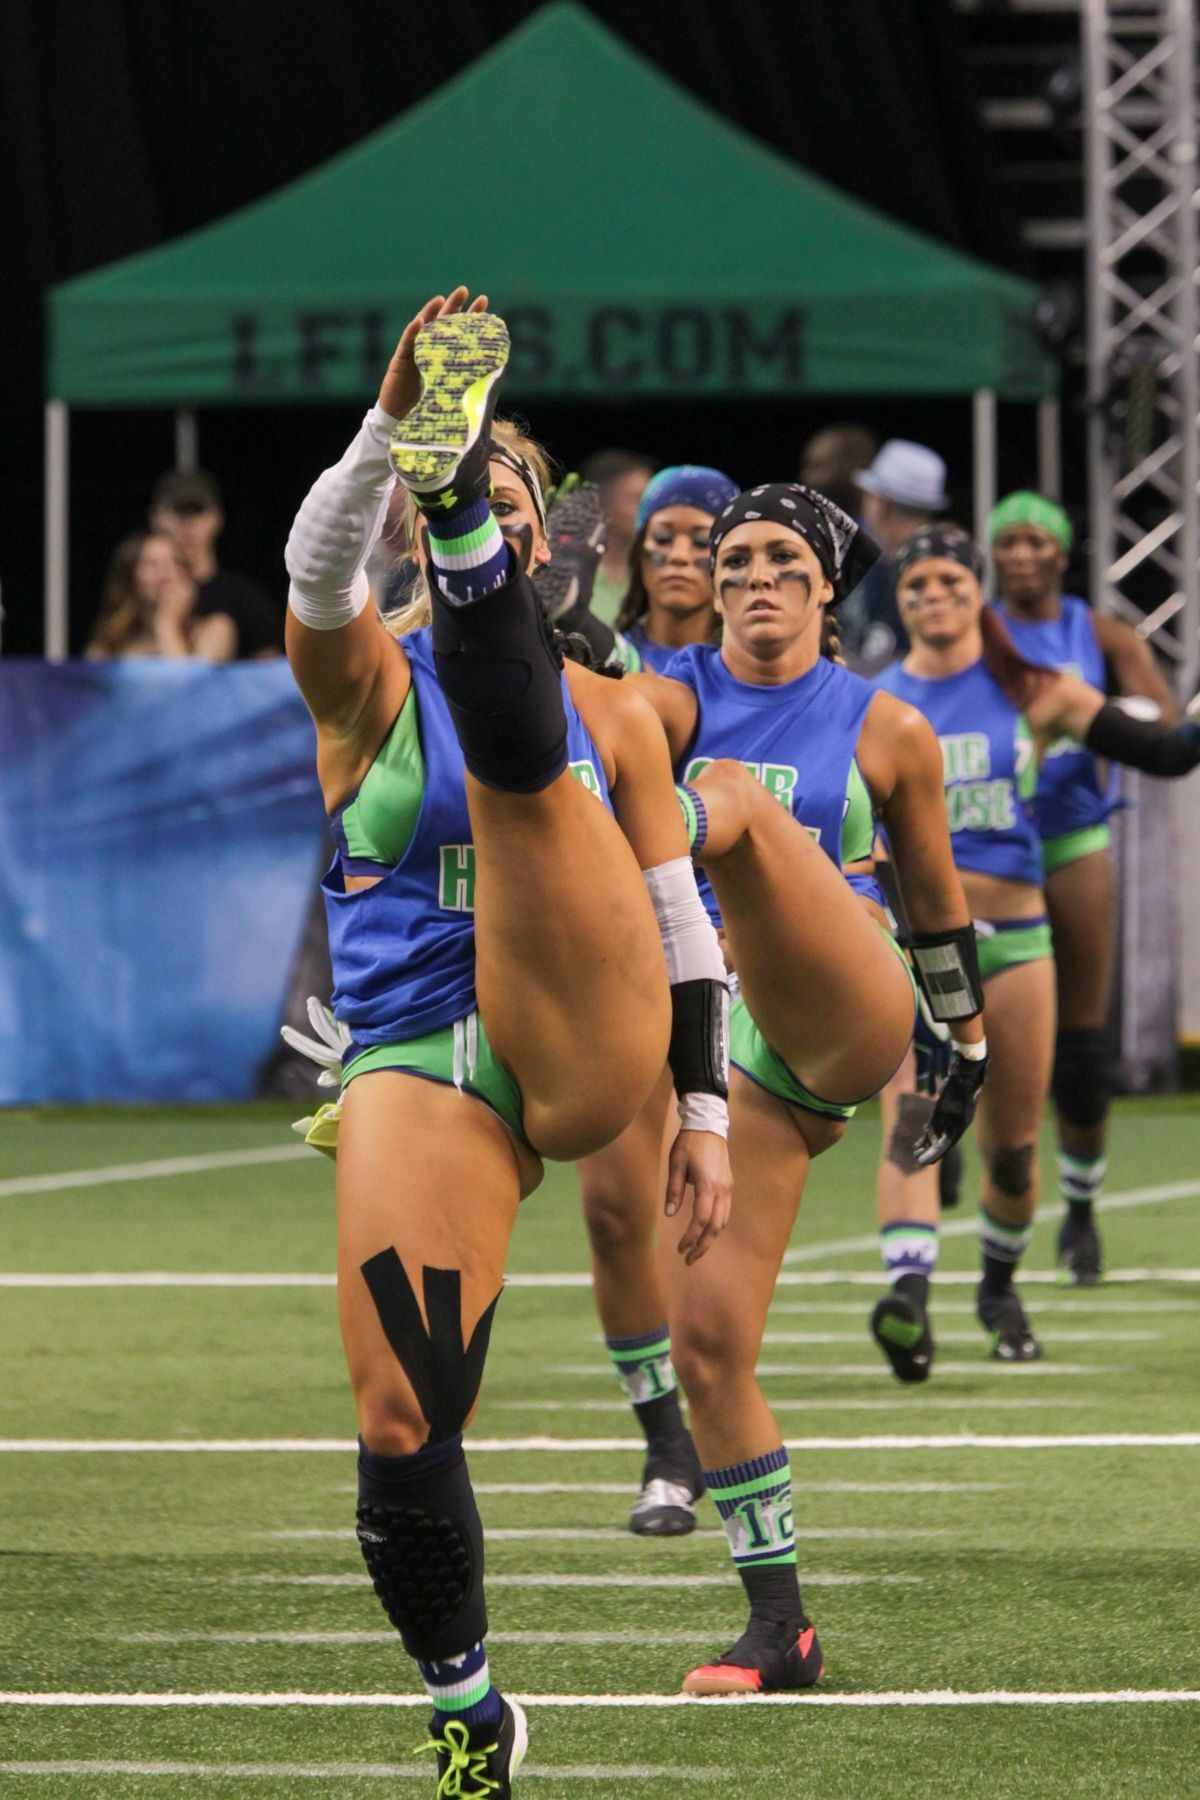 from Royal naked female american football players